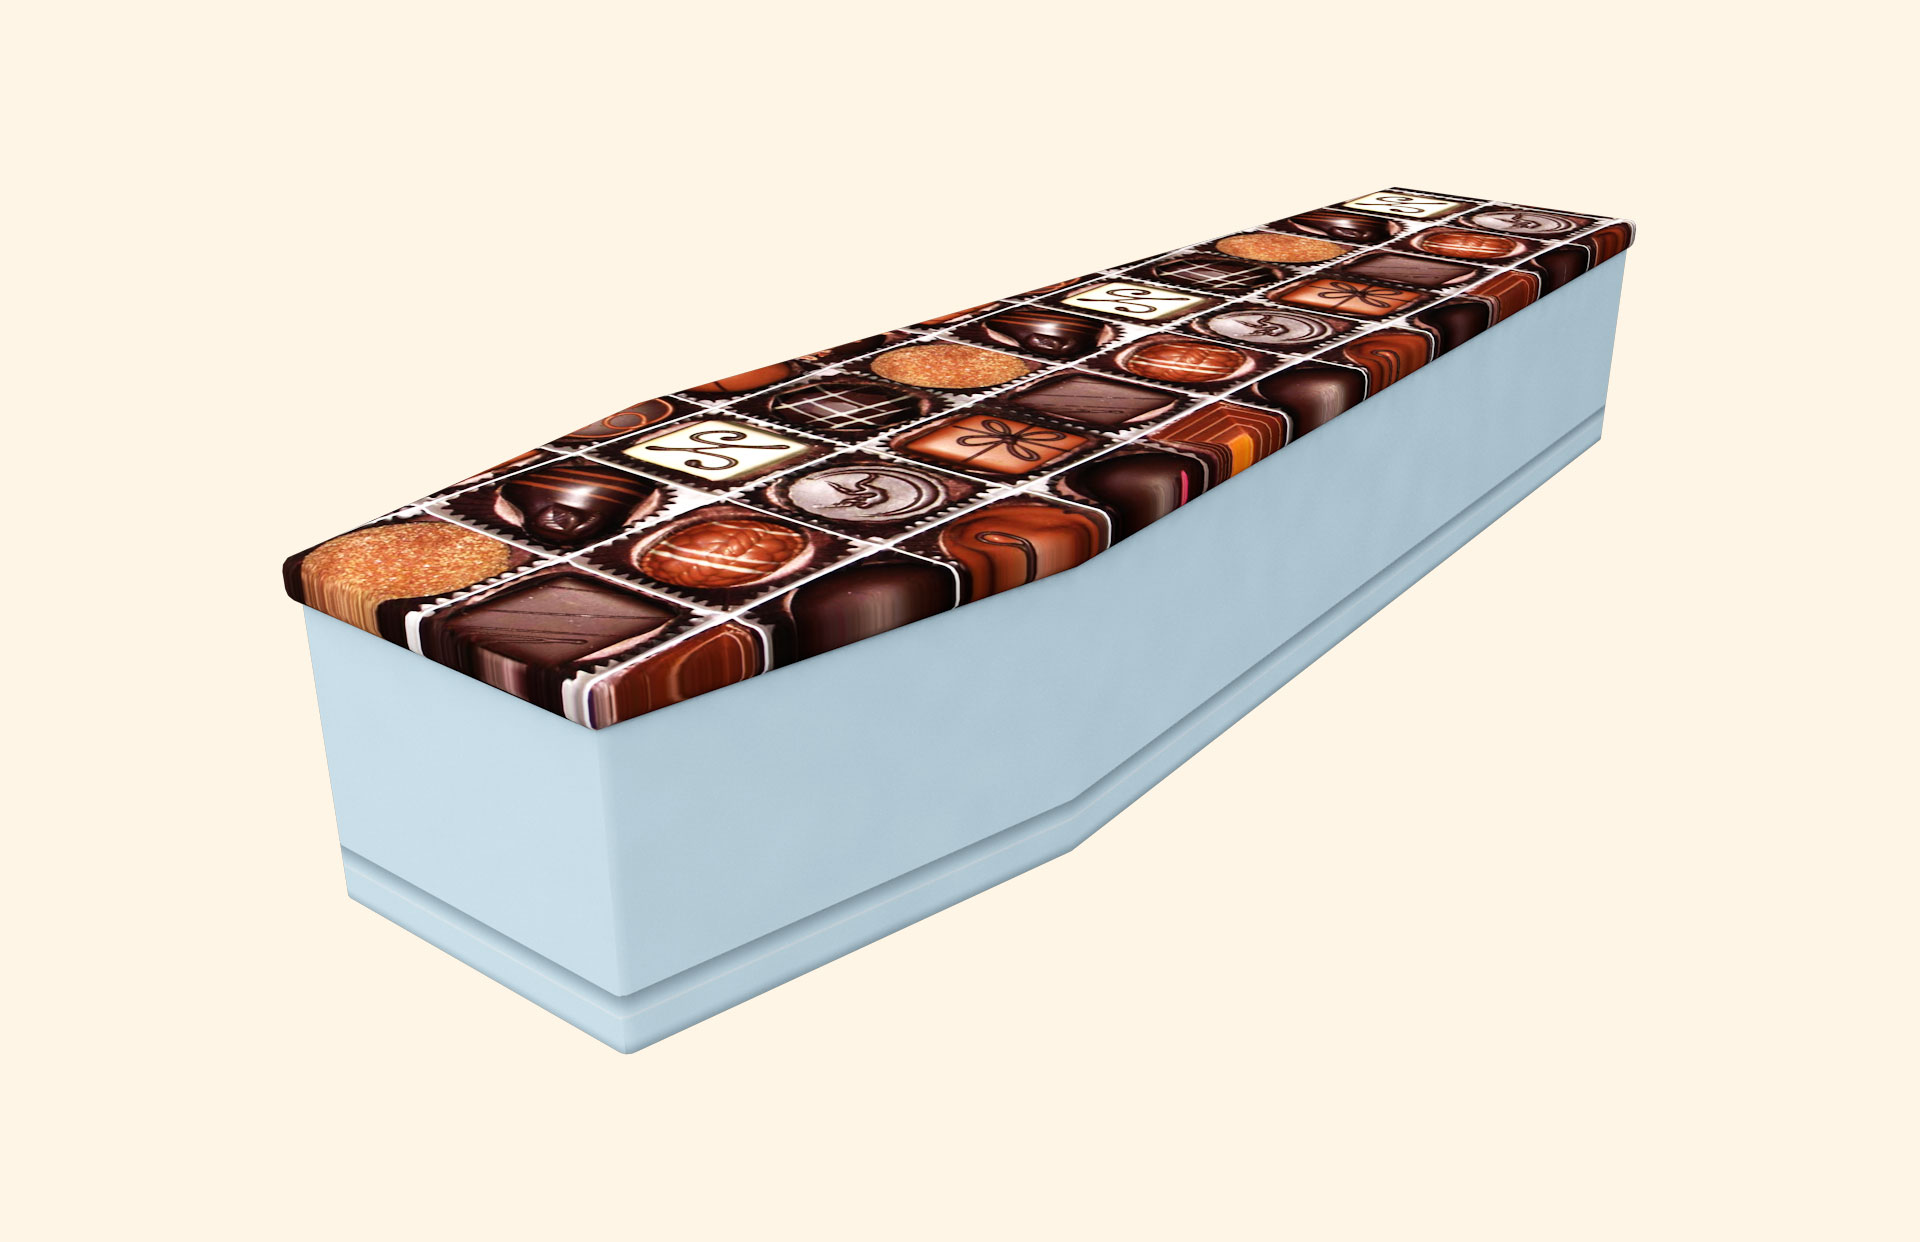 Chocoholic Skyblue Cardboard Coffin